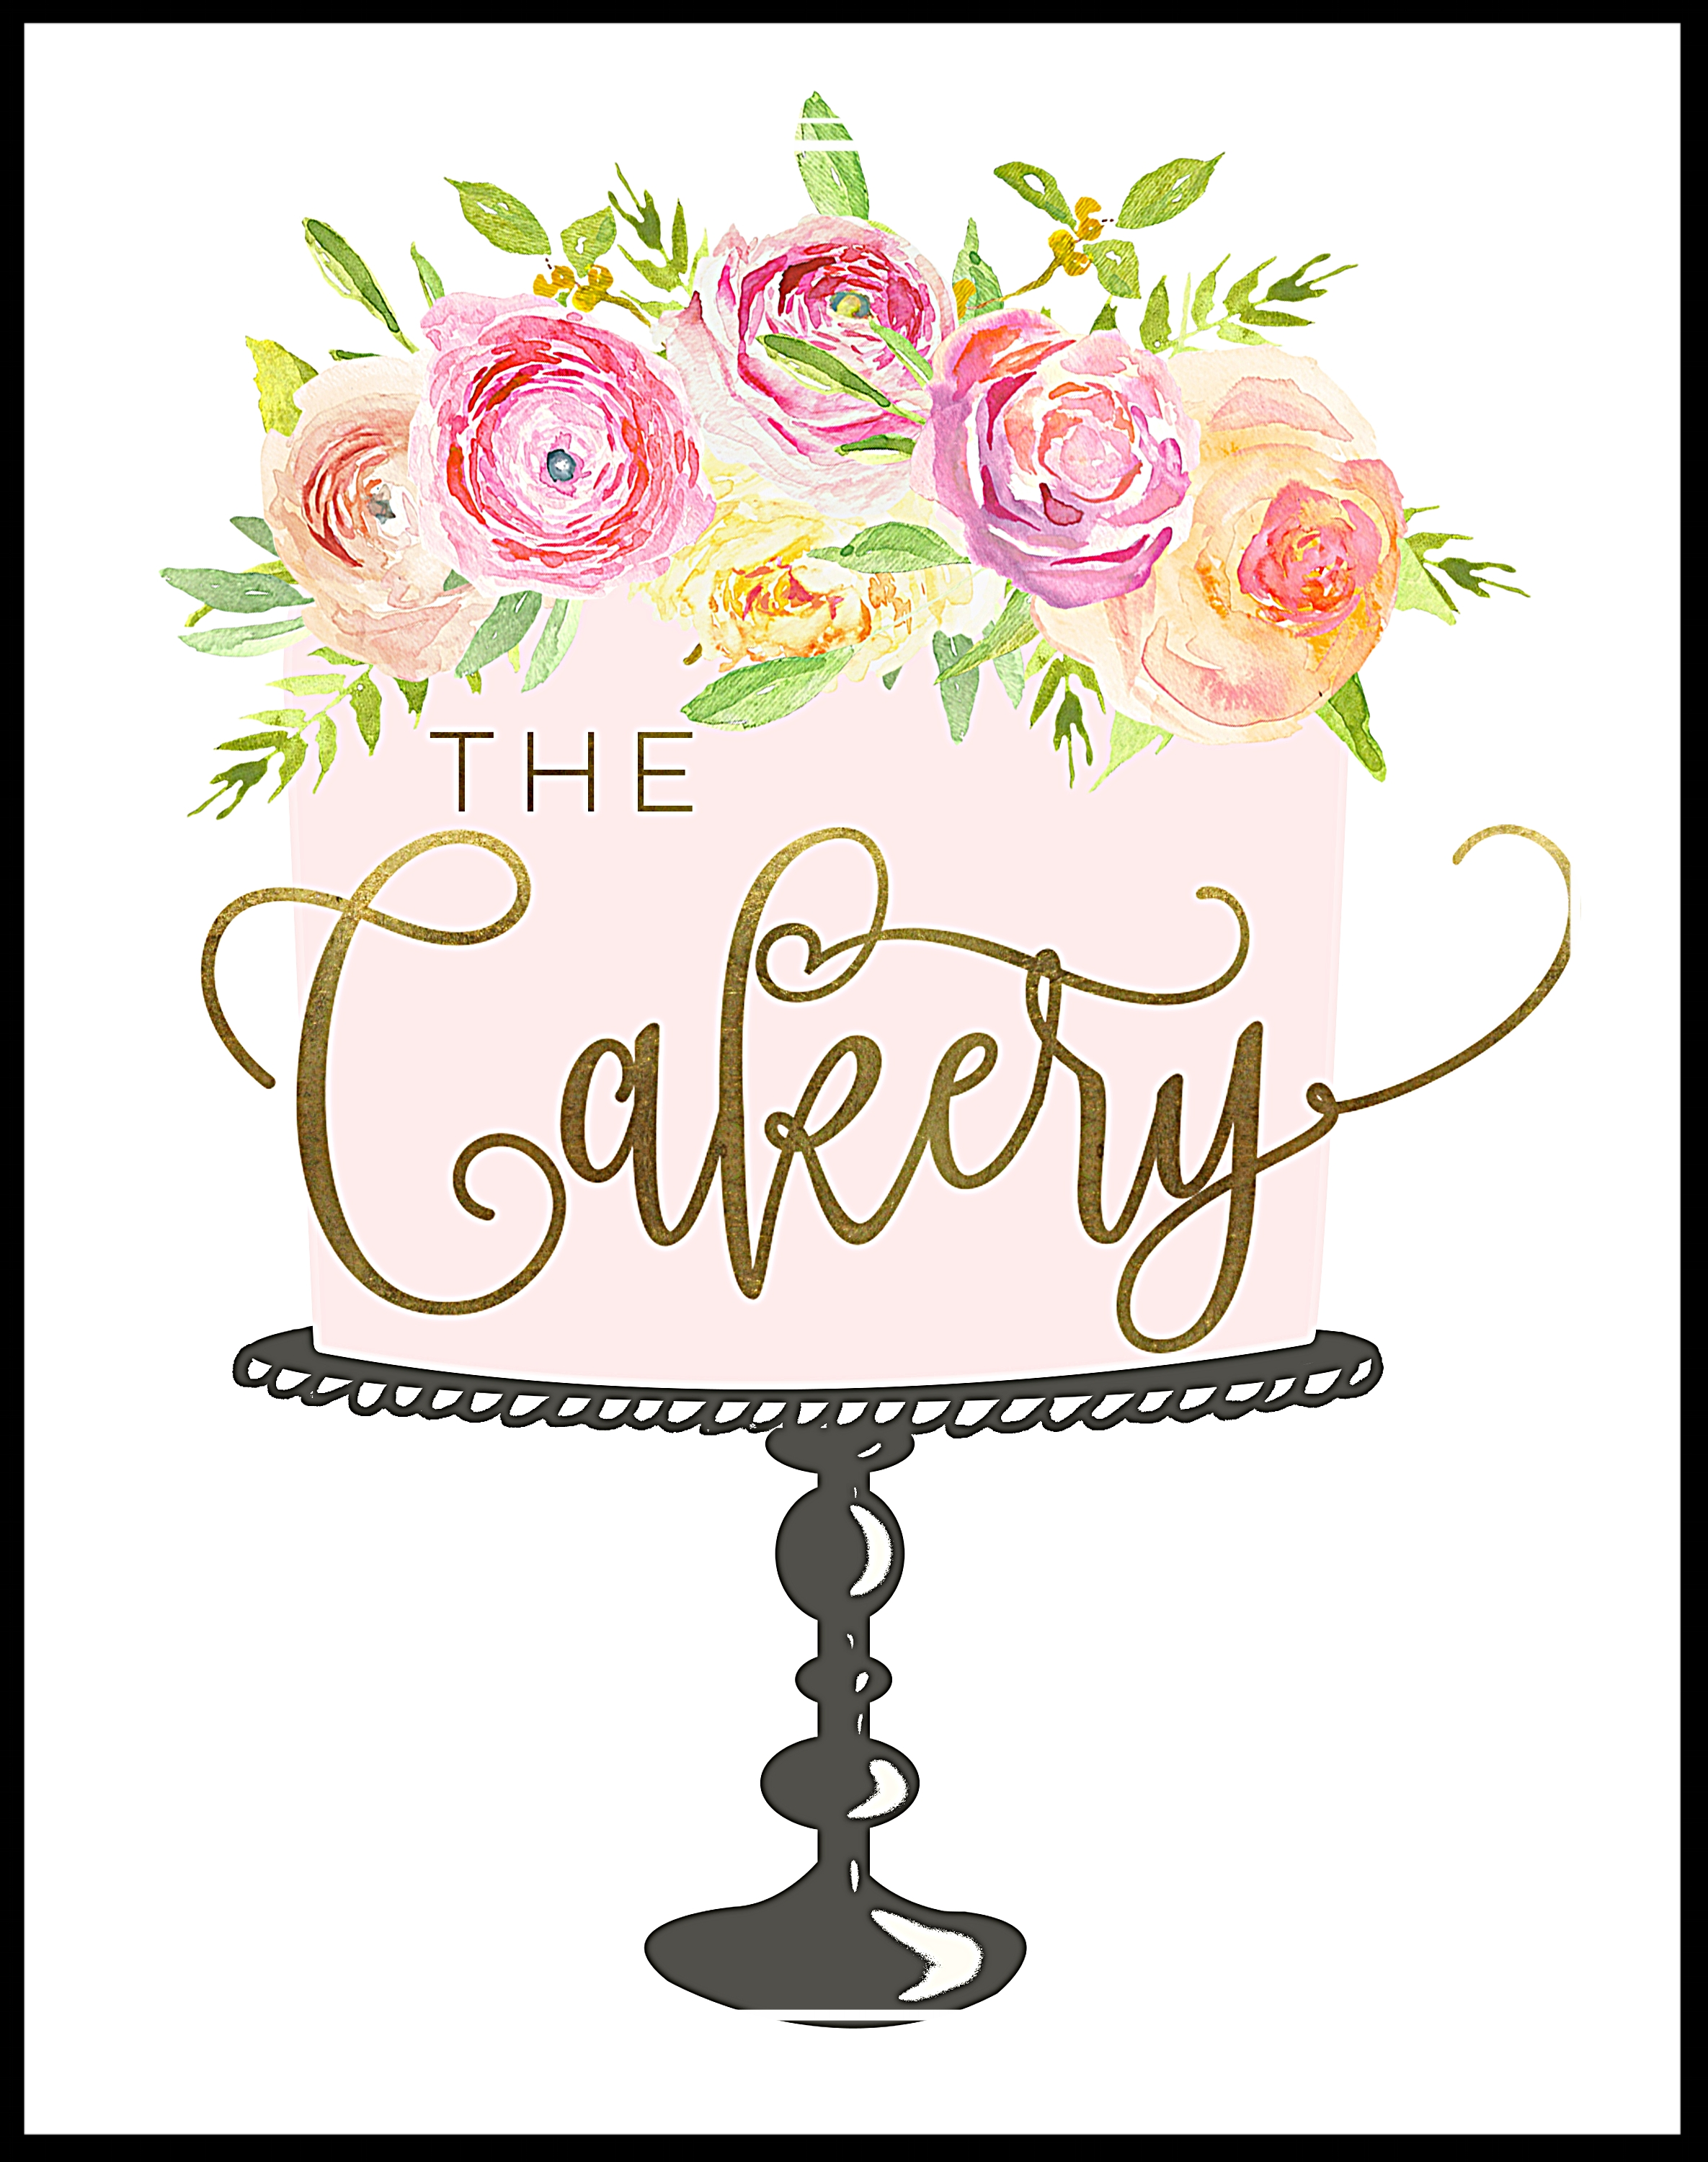 Welcome toThe Cakery - Formerly On-A-Stick Bakery1004 Main StreetFishkill, New York 12524(845) 202 -7281thecakeryfishkill@gmail.comHours:Closed Sunday and MondayTuesday - Friday 10 am - 6 pmSaturday 9 am - 4 pm